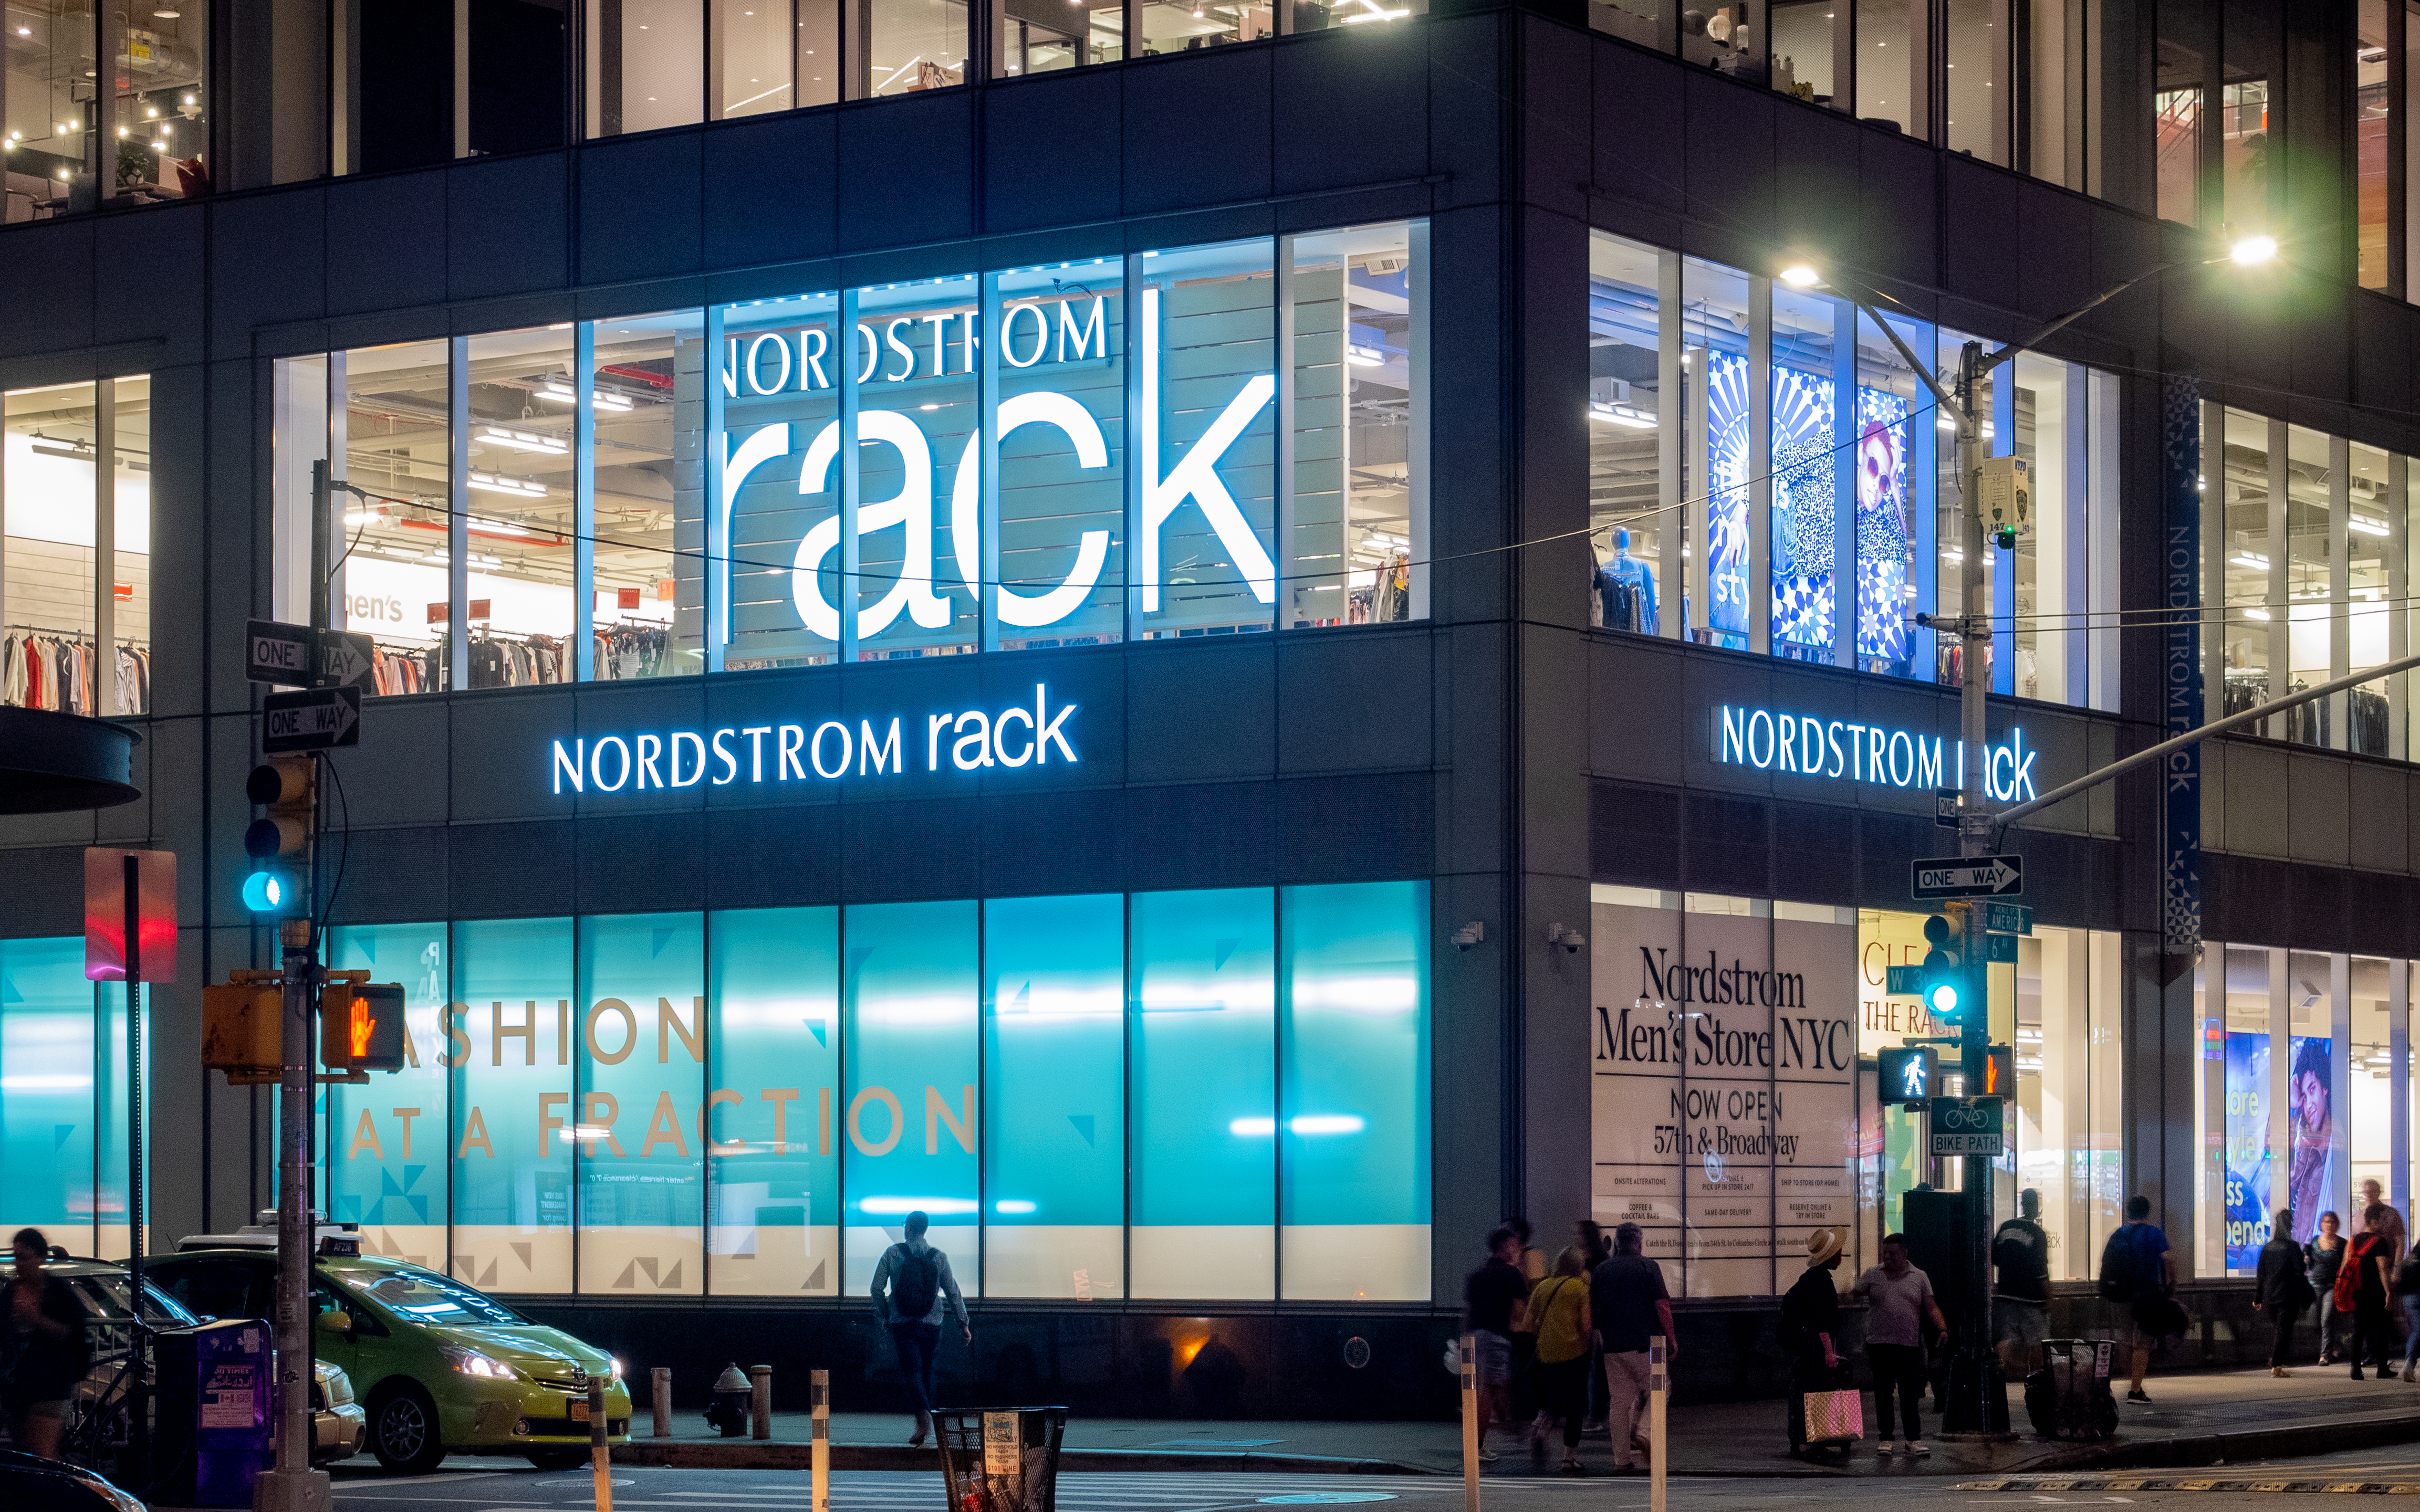 47b6a3116 Nordstrom Rack - Wikipedia